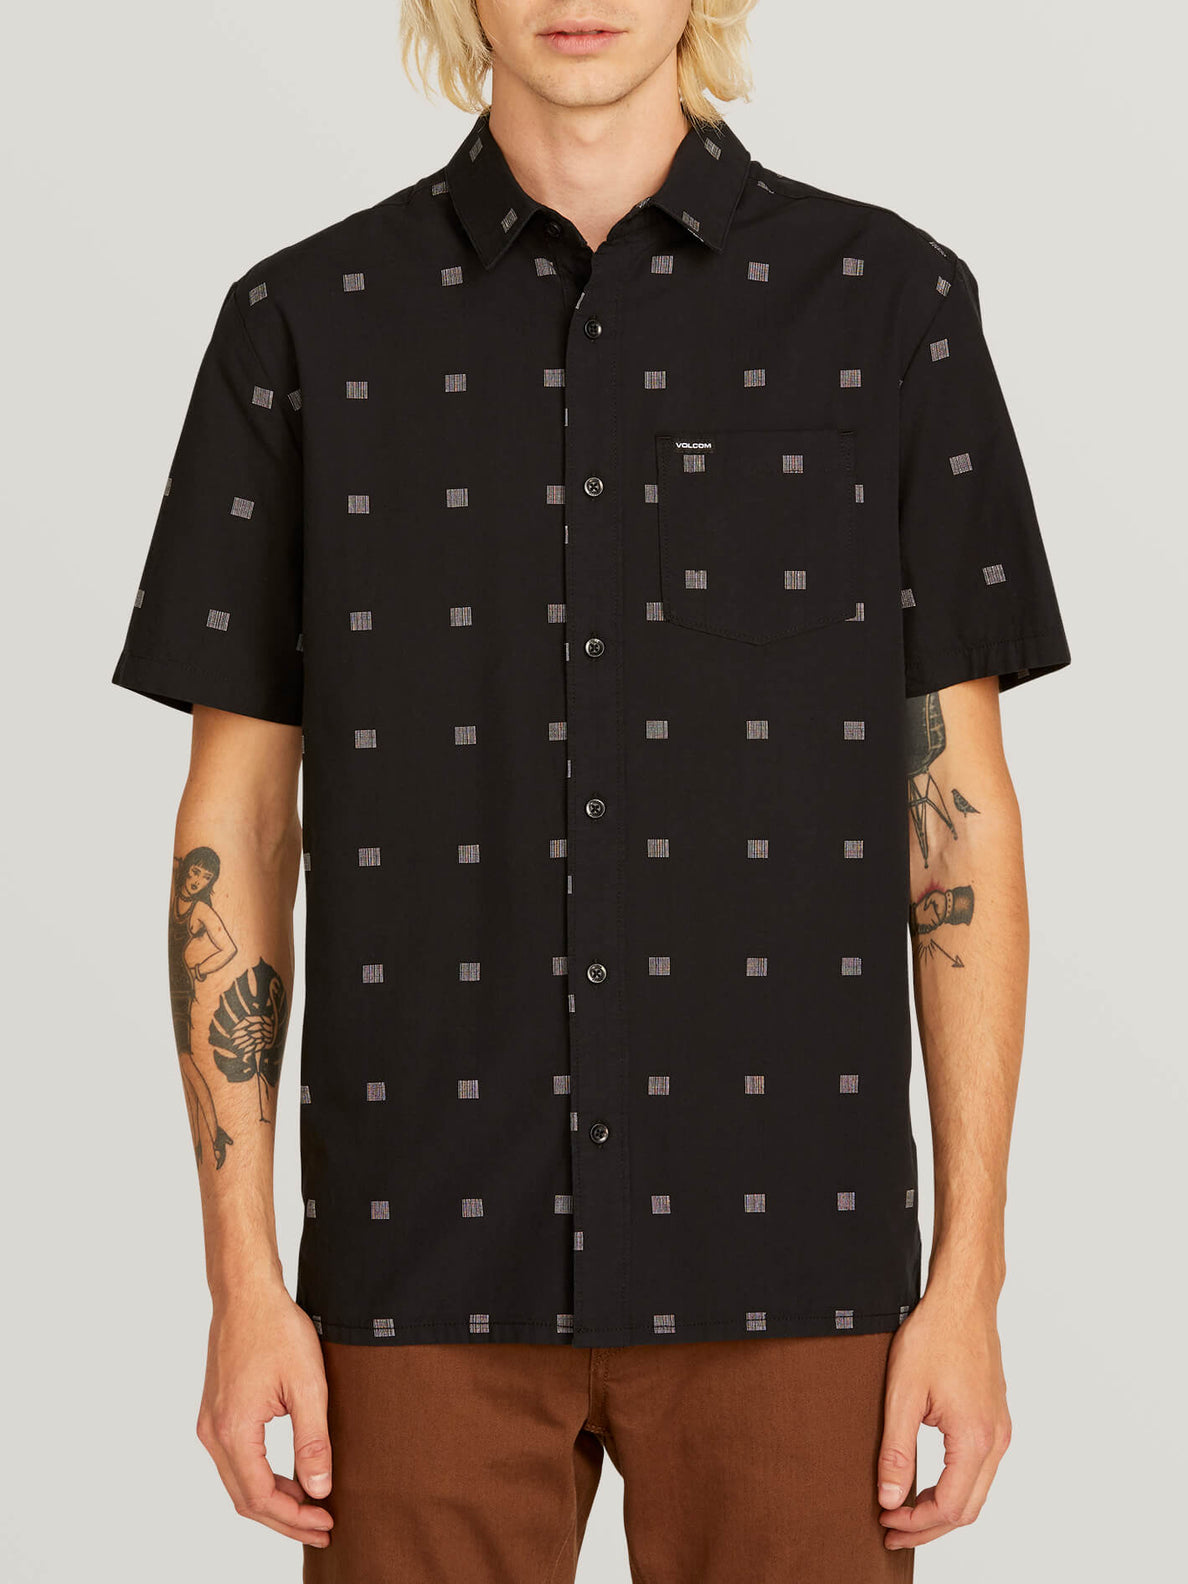 Morty Short Sleeve Shirt In Black, Front View